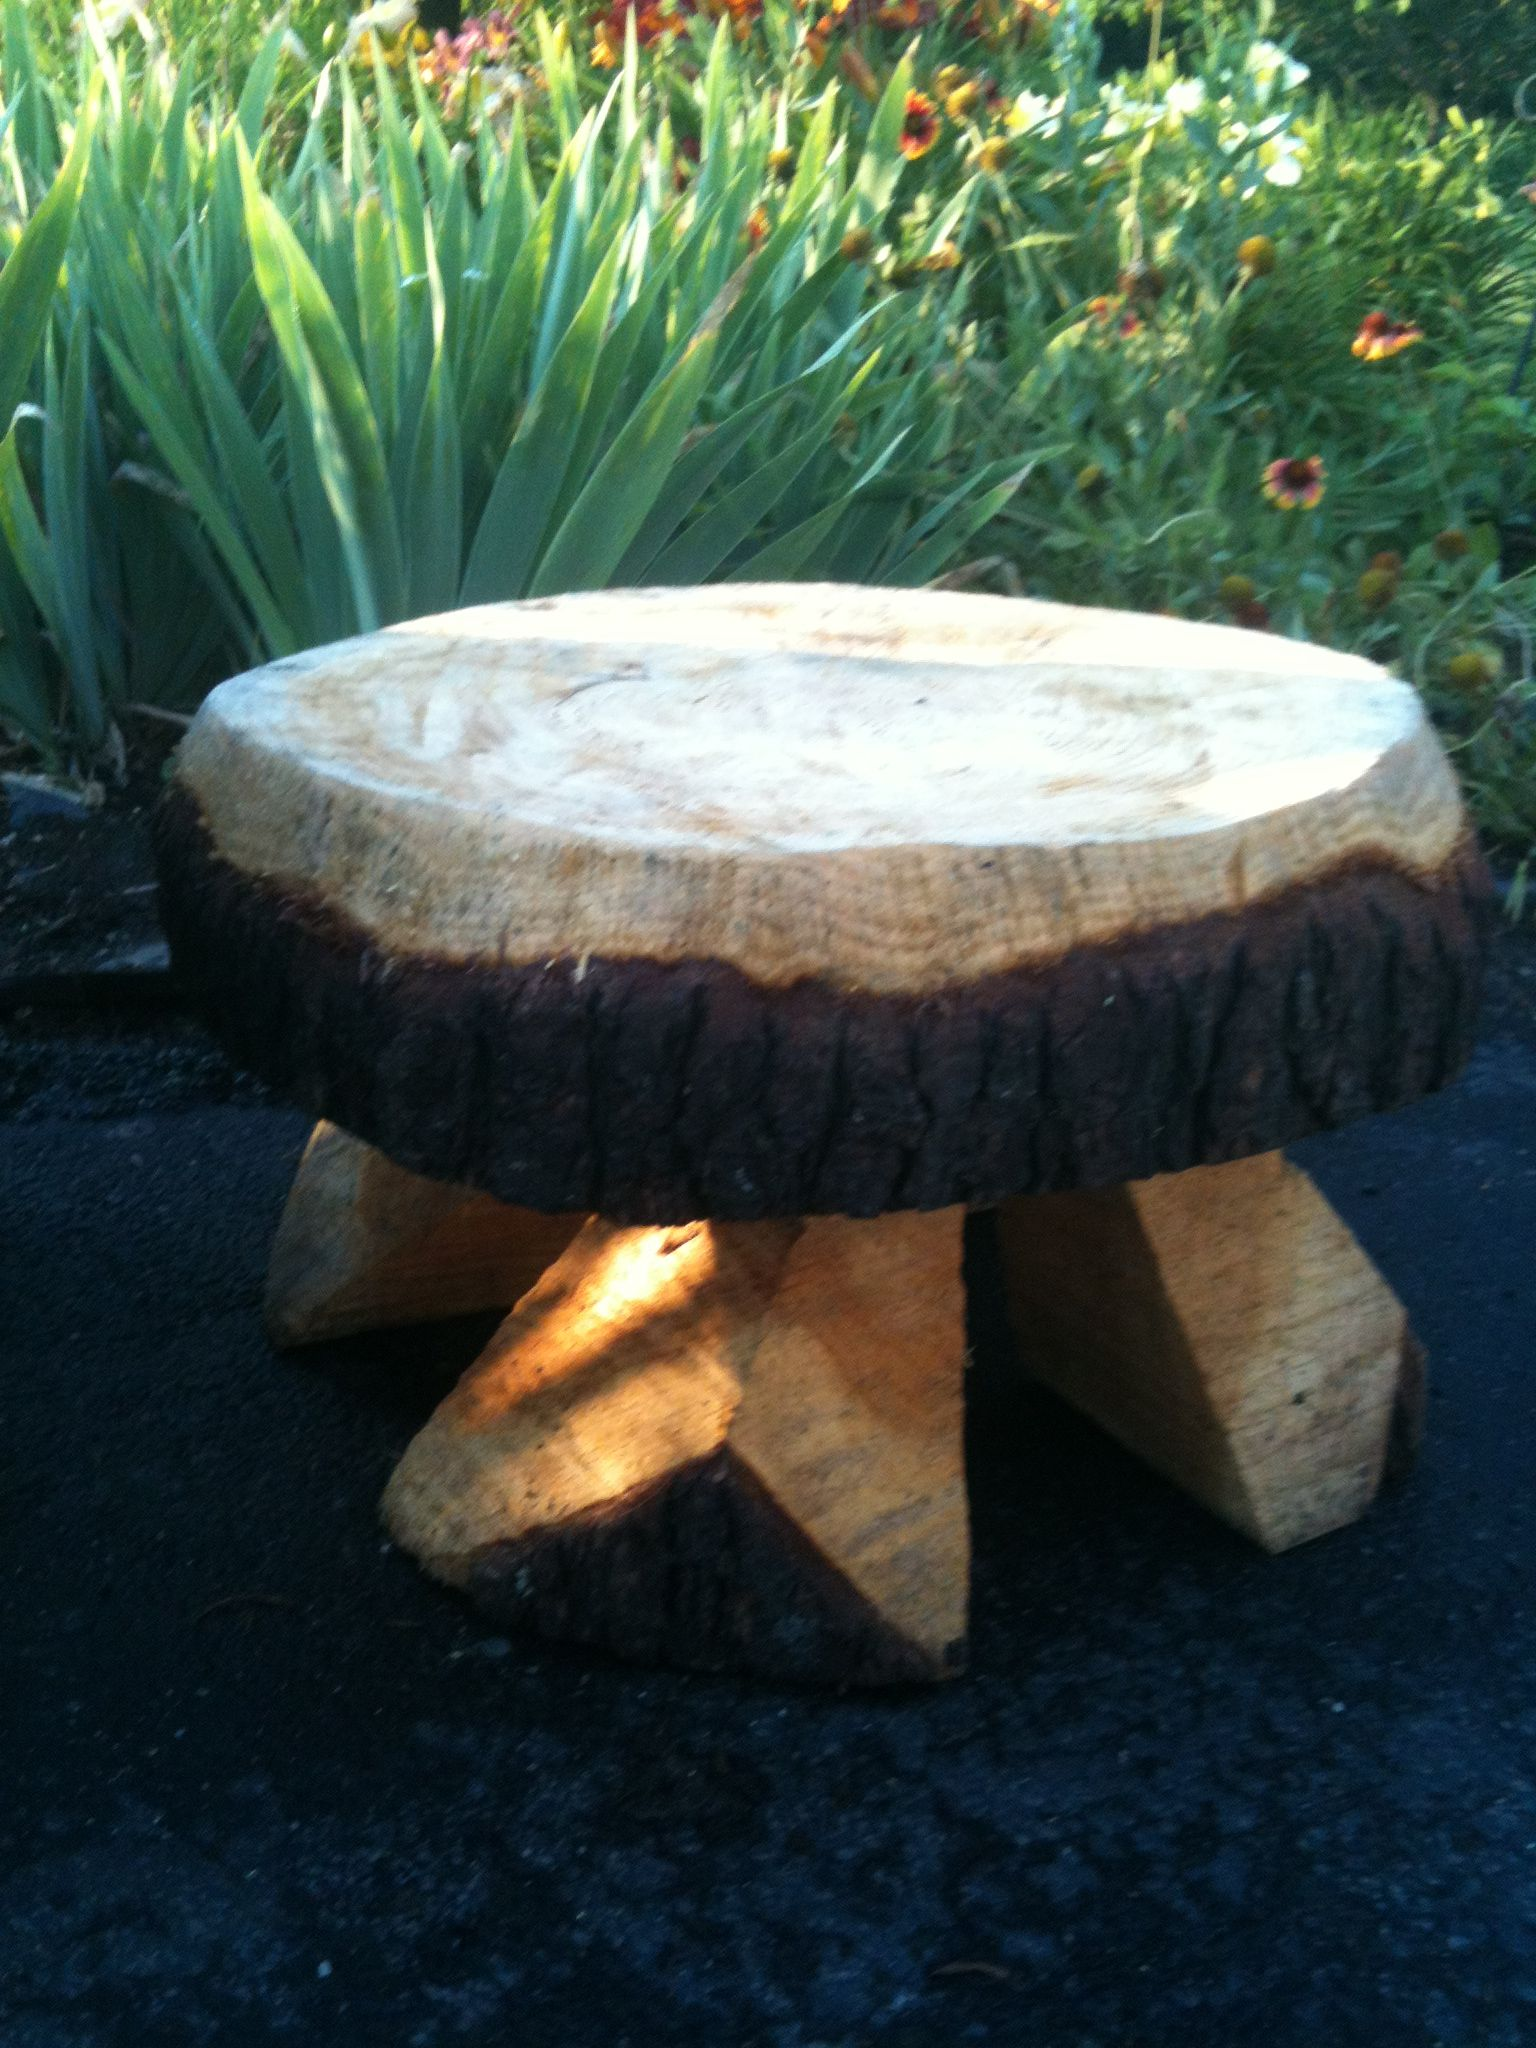 This bench was made from a slice of a tree trunk and legs for Large tree trunk slices